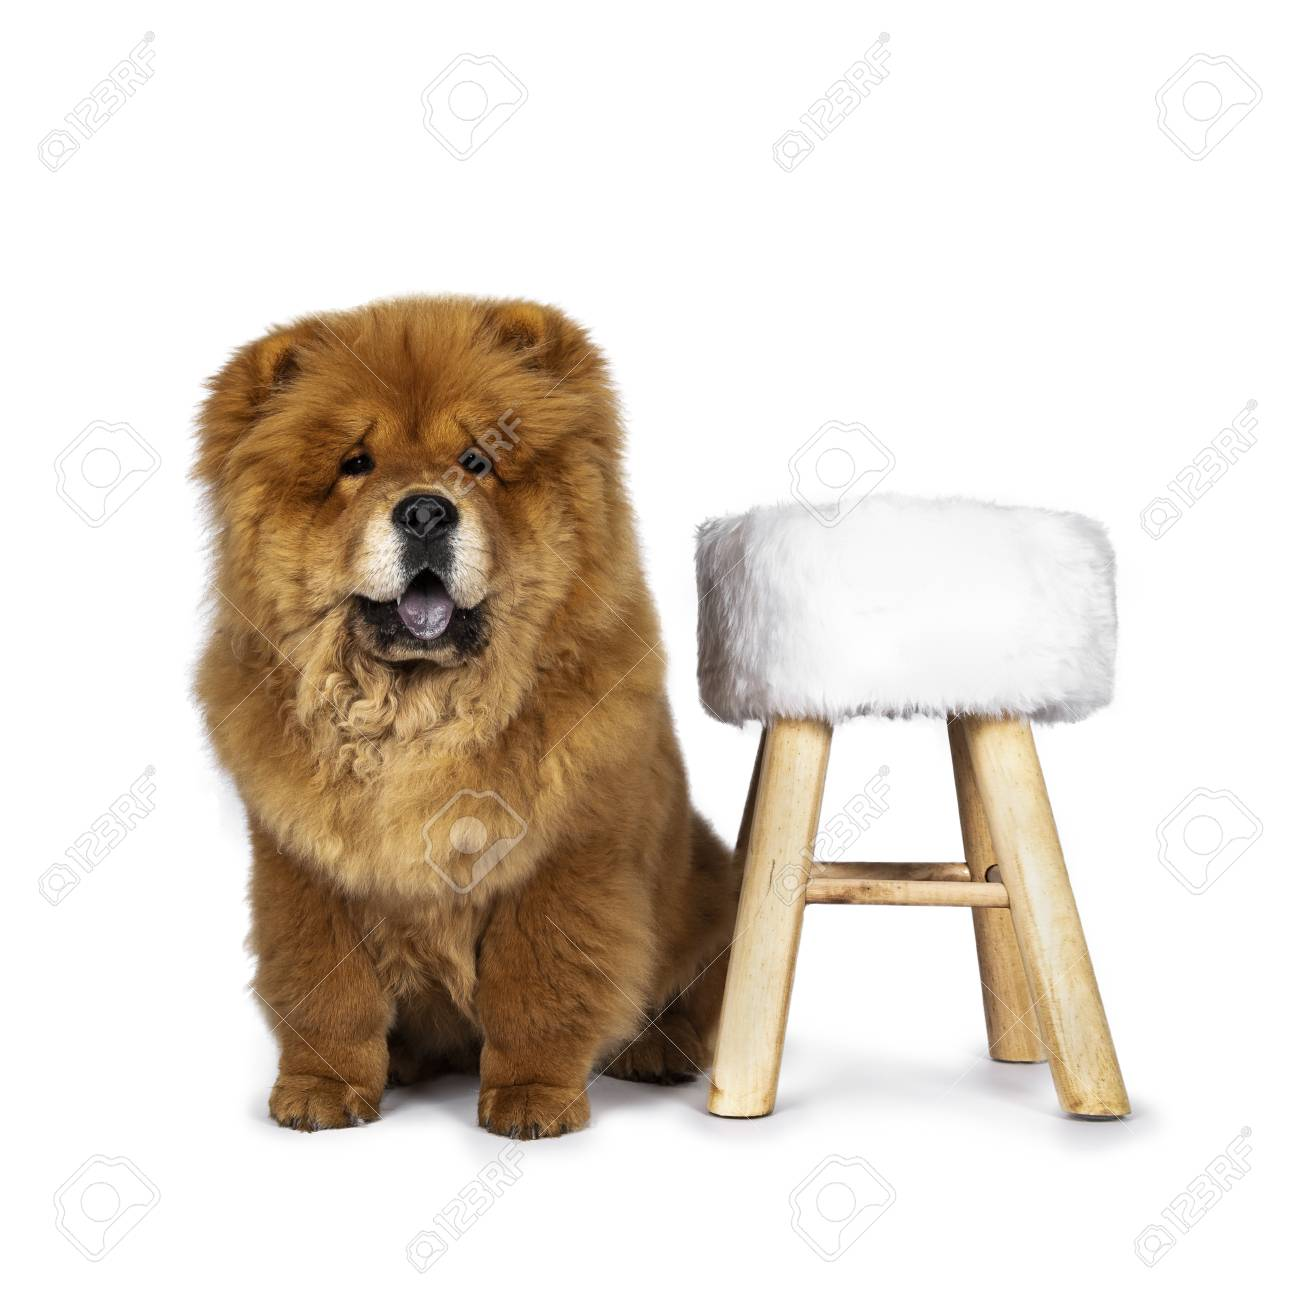 Cute fluffy Chow Chow puppy dog, sitting straight up facing front